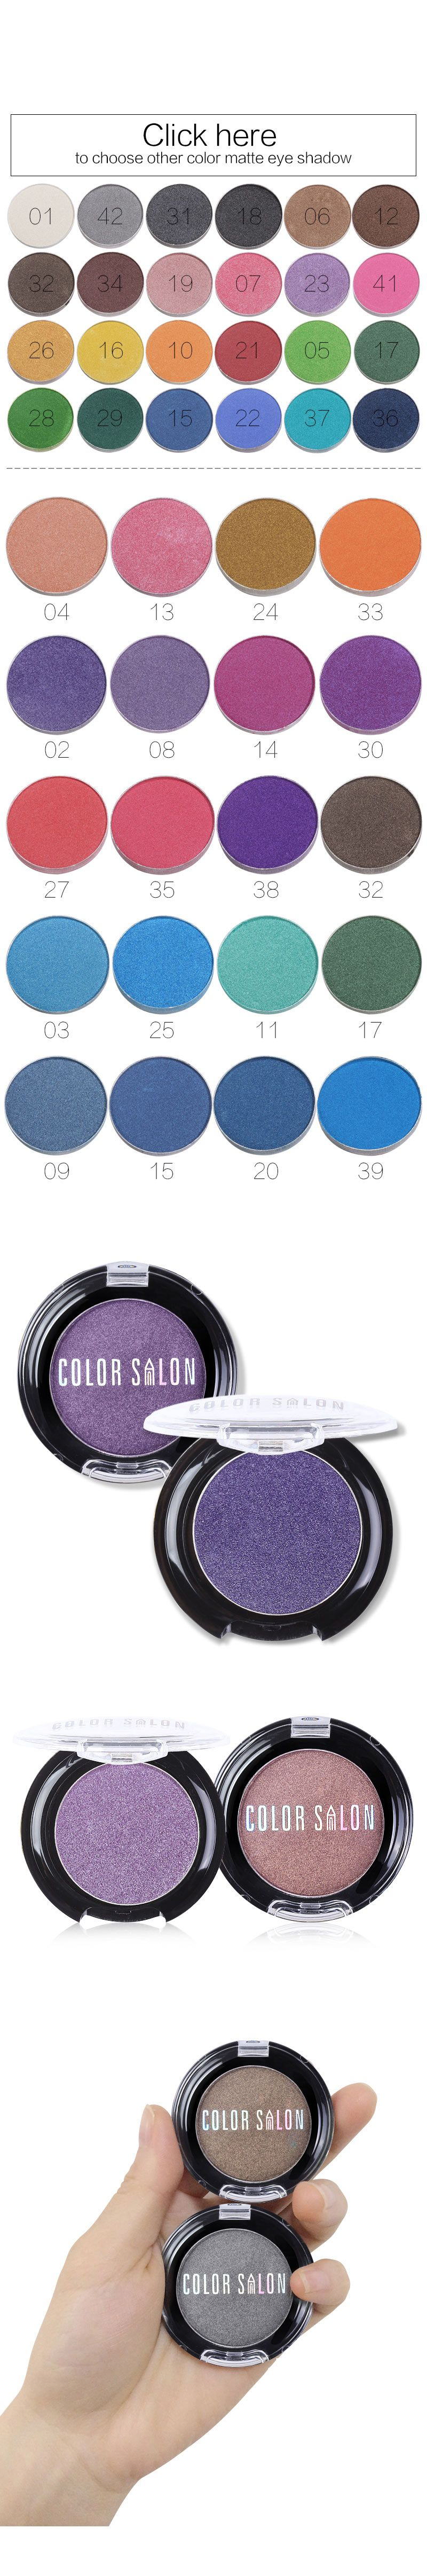 Color Salon Shimmer eyeshadow Radiant Palette Luminous Pigment Eye Shadow Makeup Professional Brand Beauty Make Up Cosmetic